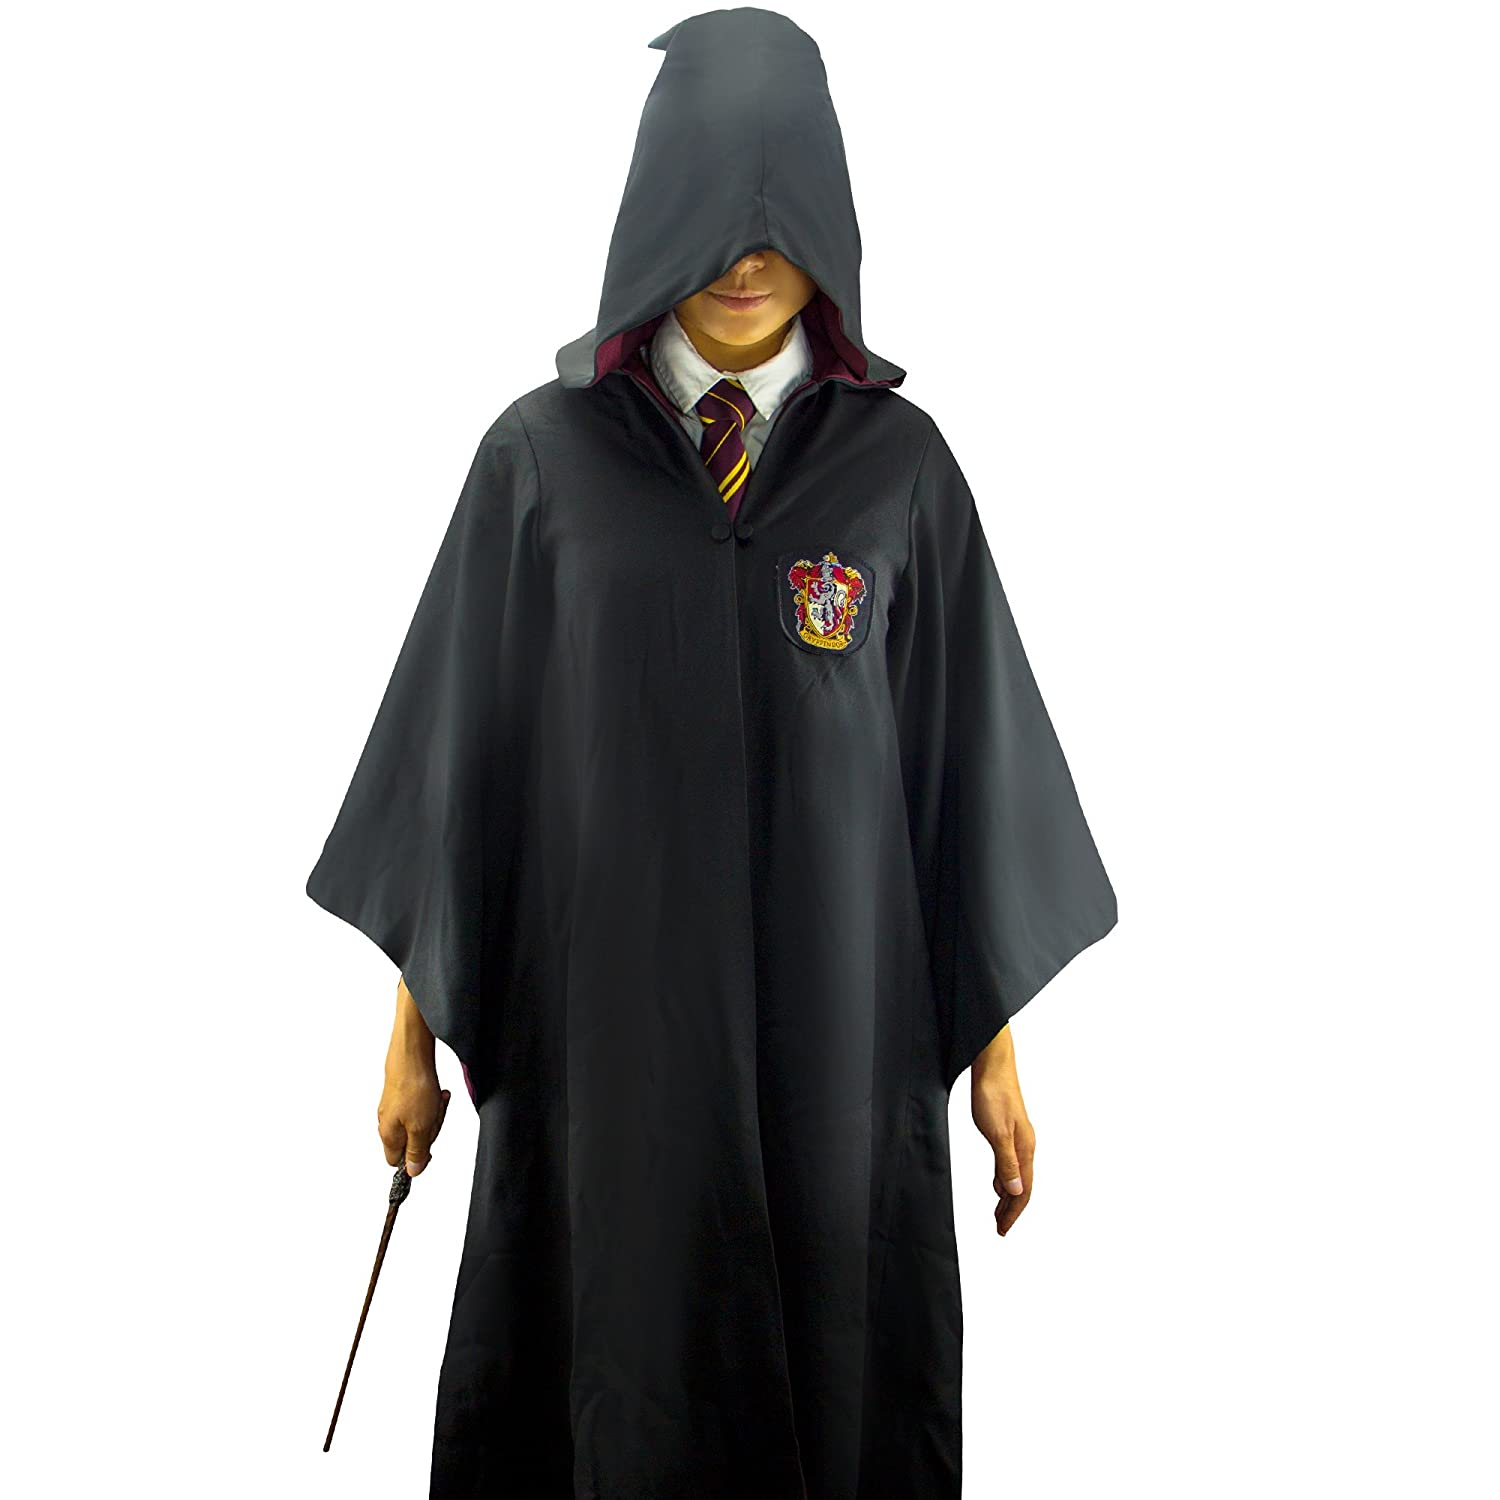 Amazon.com  Harry Potter Robe - Authentic Official Tailored Wizard Robes  Cloak - Adults and Kids Size - Cinereplicas  Clothing 45daabdf5